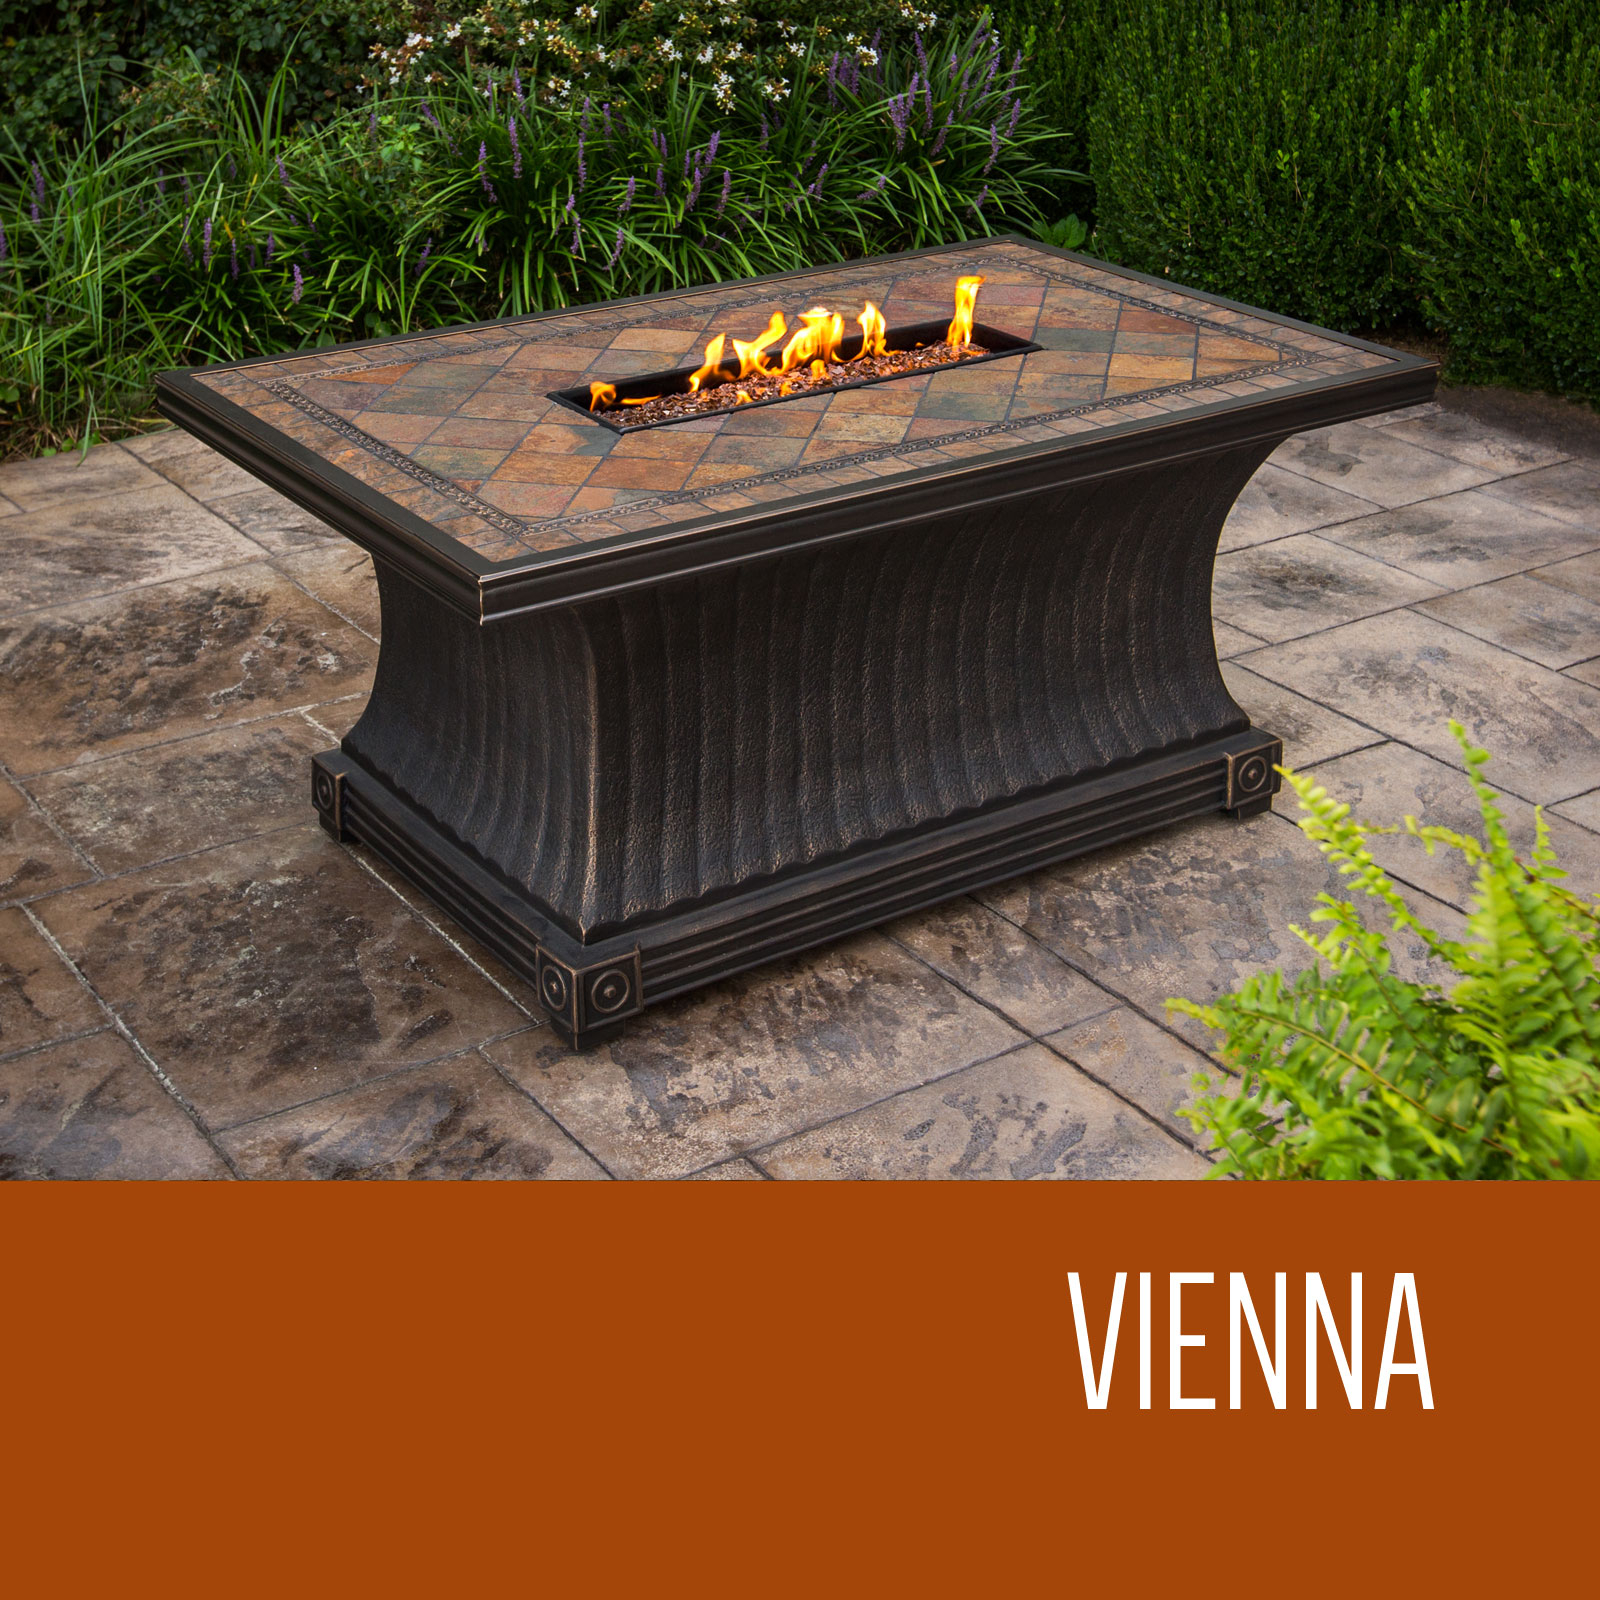 Vienna 32 X 52 Inch Rectangular Slate Top Gas Fire Pit Table in size 1600 X 1600